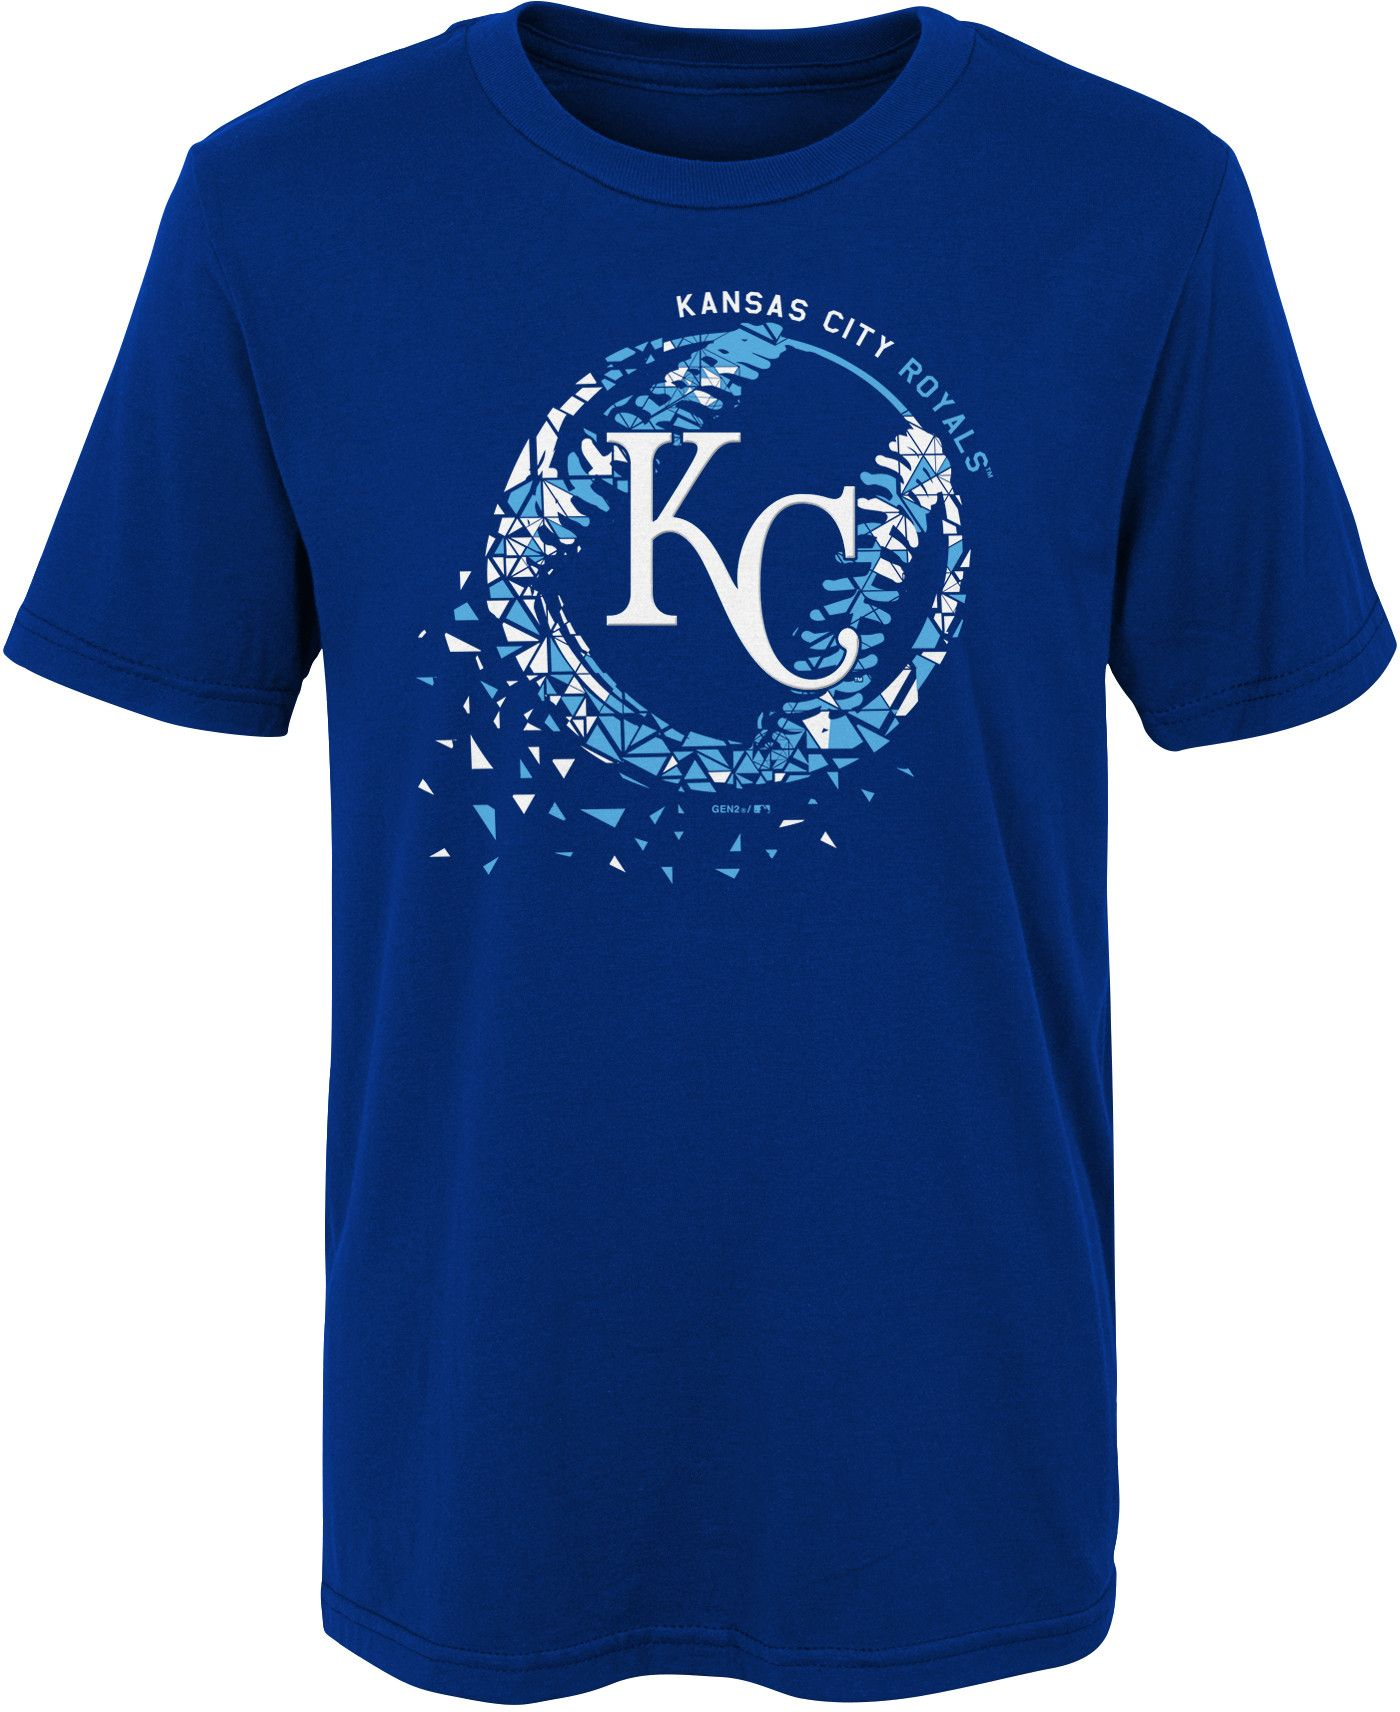 Gen2 Boys' Kansas City Royals Shatter Ball T-Shirt